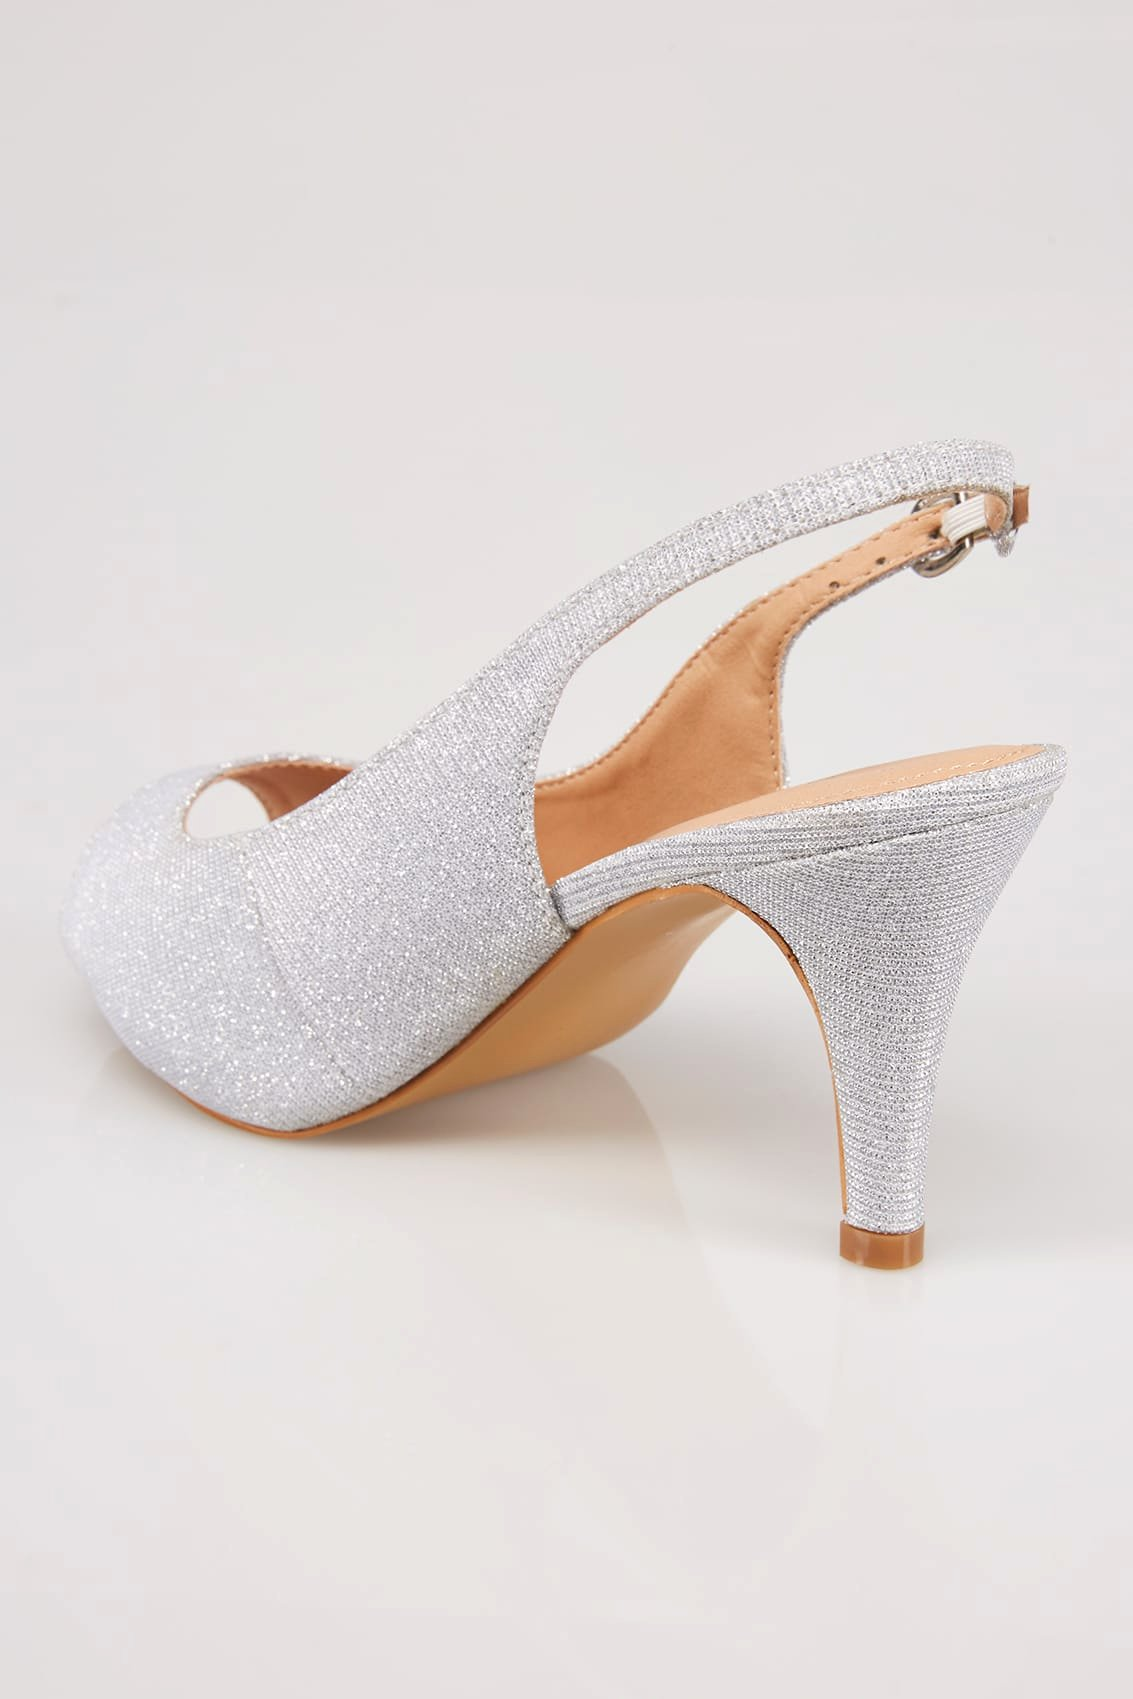 No Return Policy Template Unique Silver Glittery Peep toe Sling Back Heels In Eee Fit